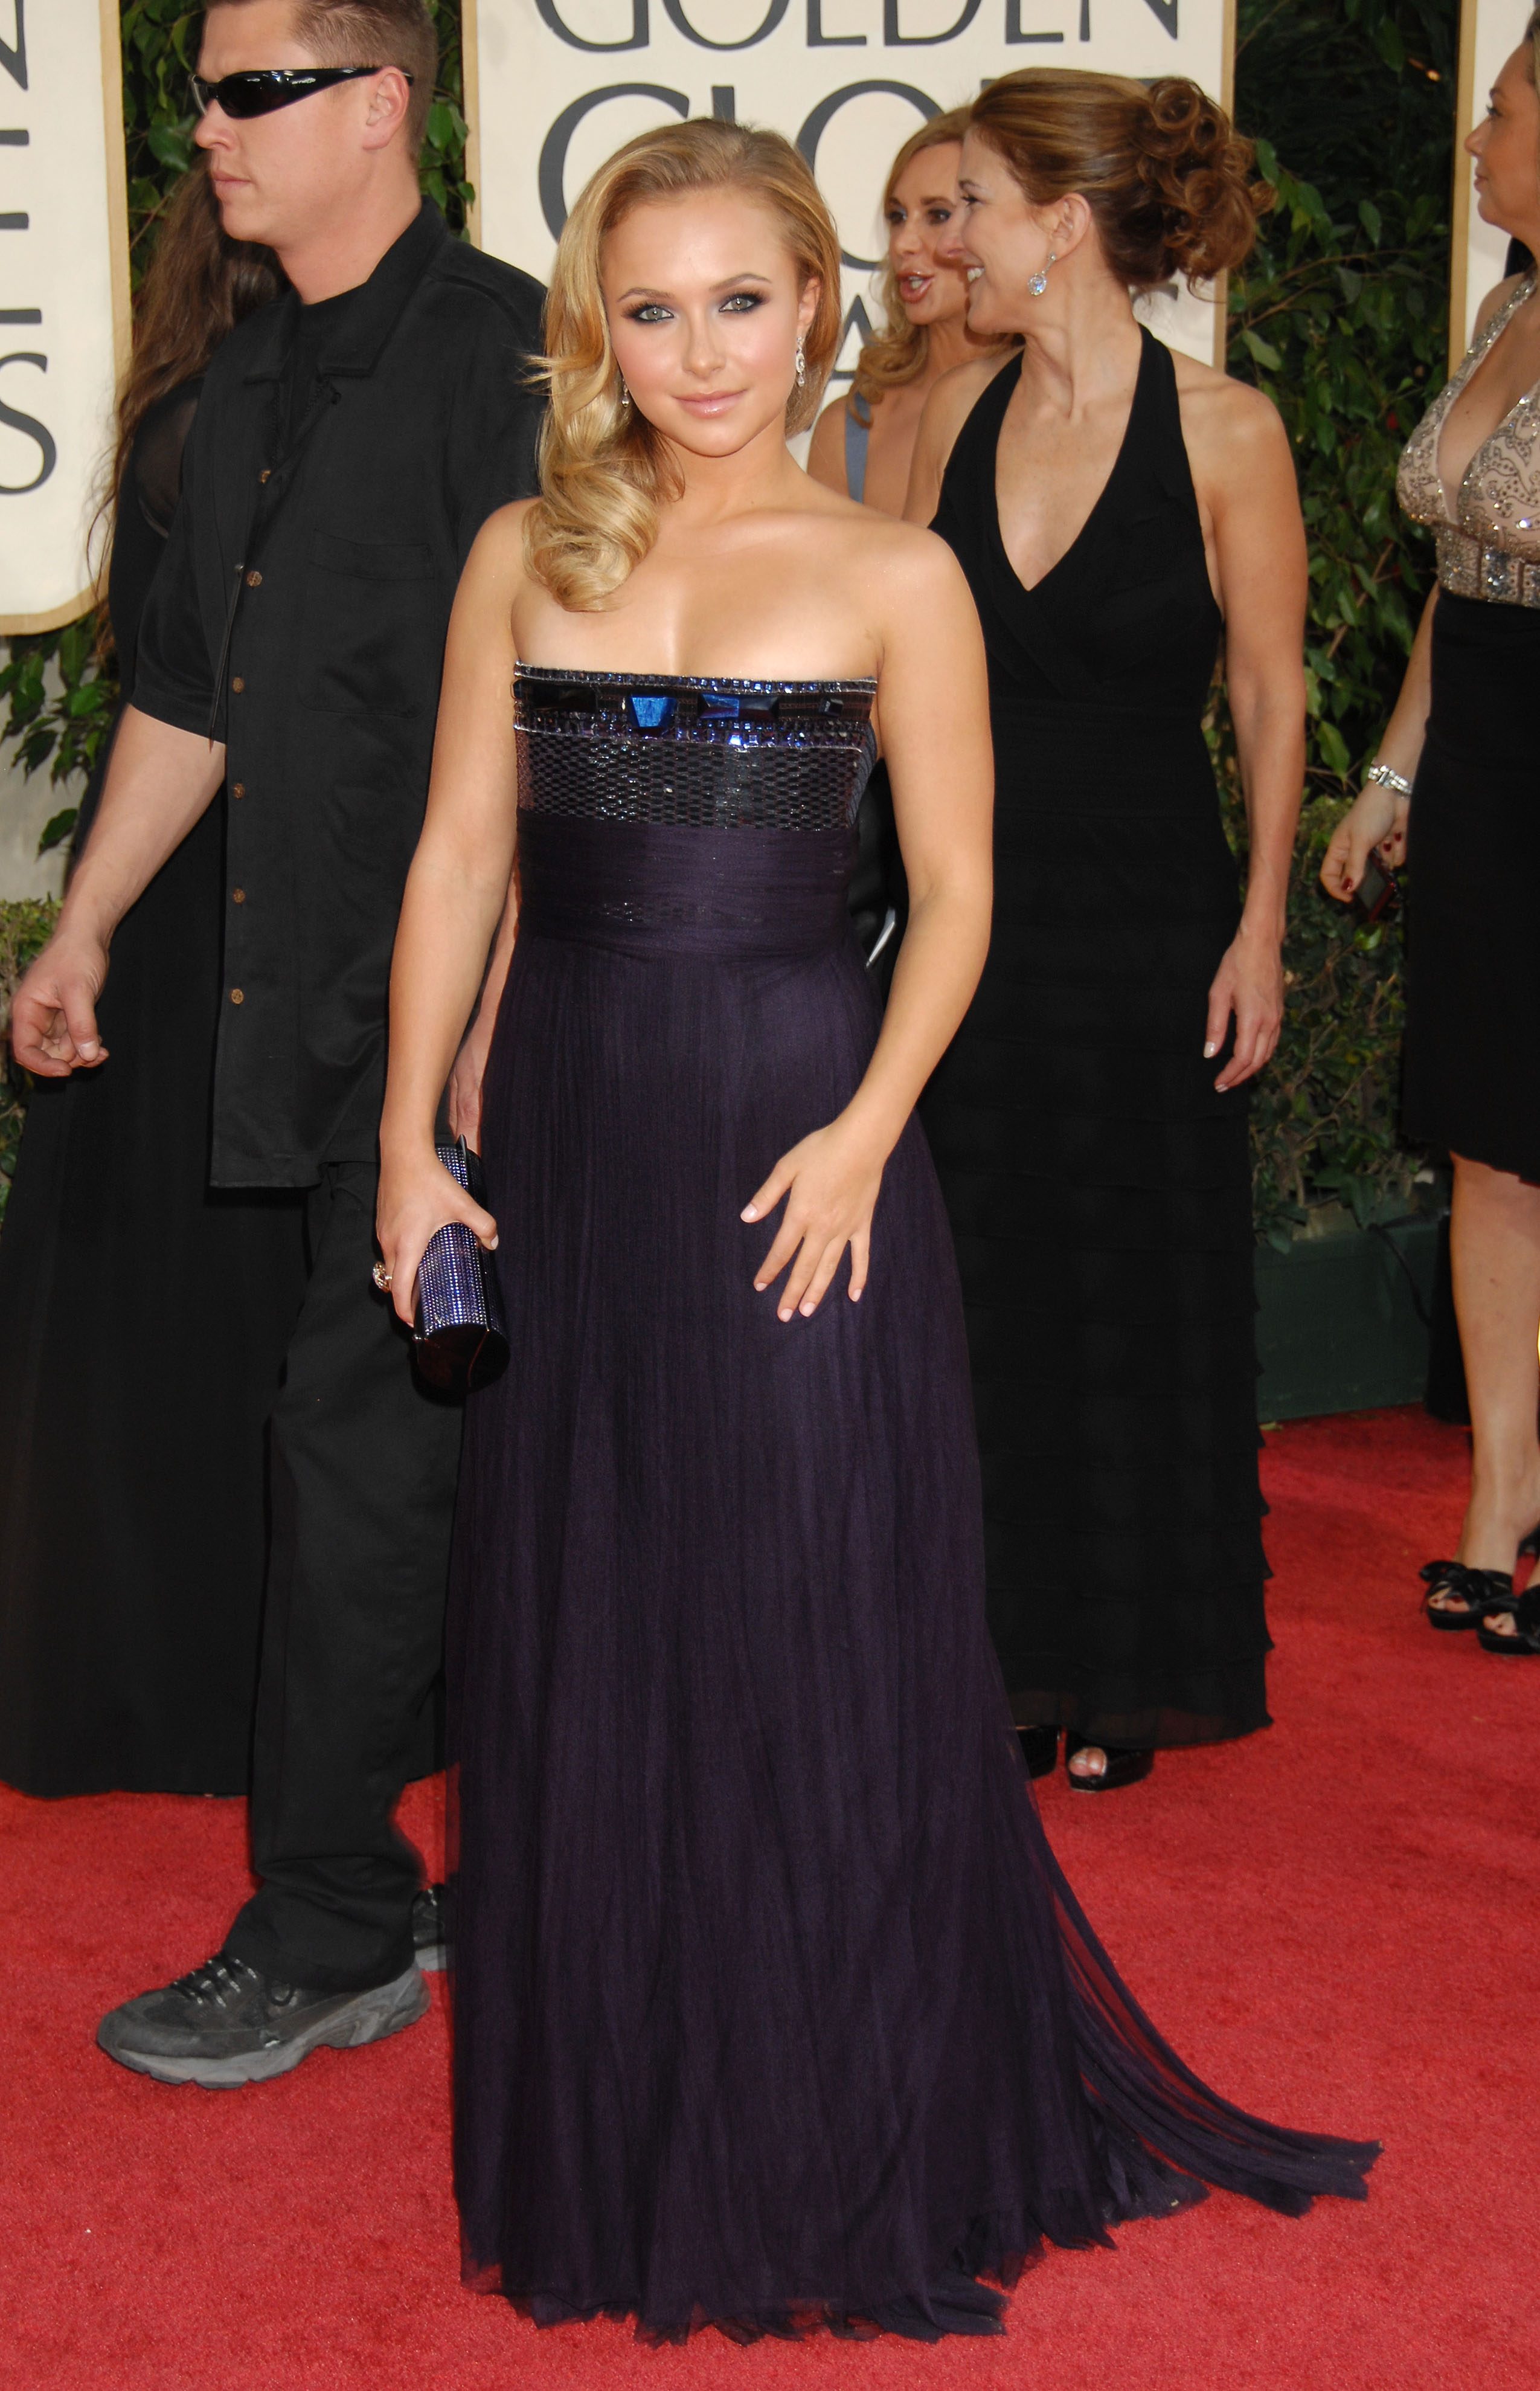 29468_Celebutopia-Hayden_Panettiere_arrives_at_the_66th_Annual_Golden_Globe_Awards-11_122_223lo.jpg